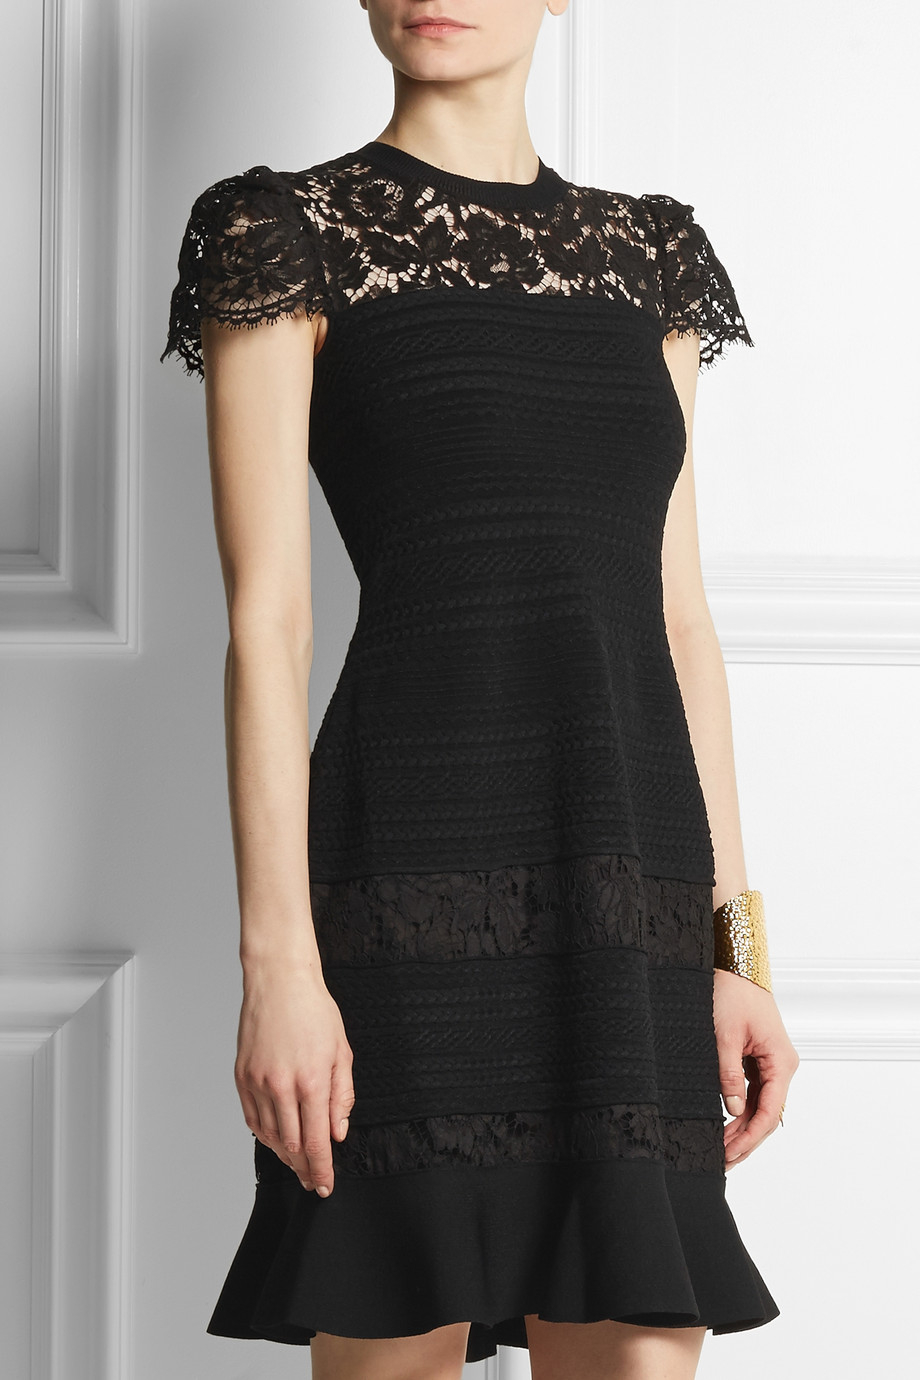 Valentino Woman Lace-paneled Wool And Silk-blend Dress Black Size 42 Valentino Free Shipping Pay With Visa Factory Outlet Online Outlet Geniue Stockist RquiiI0